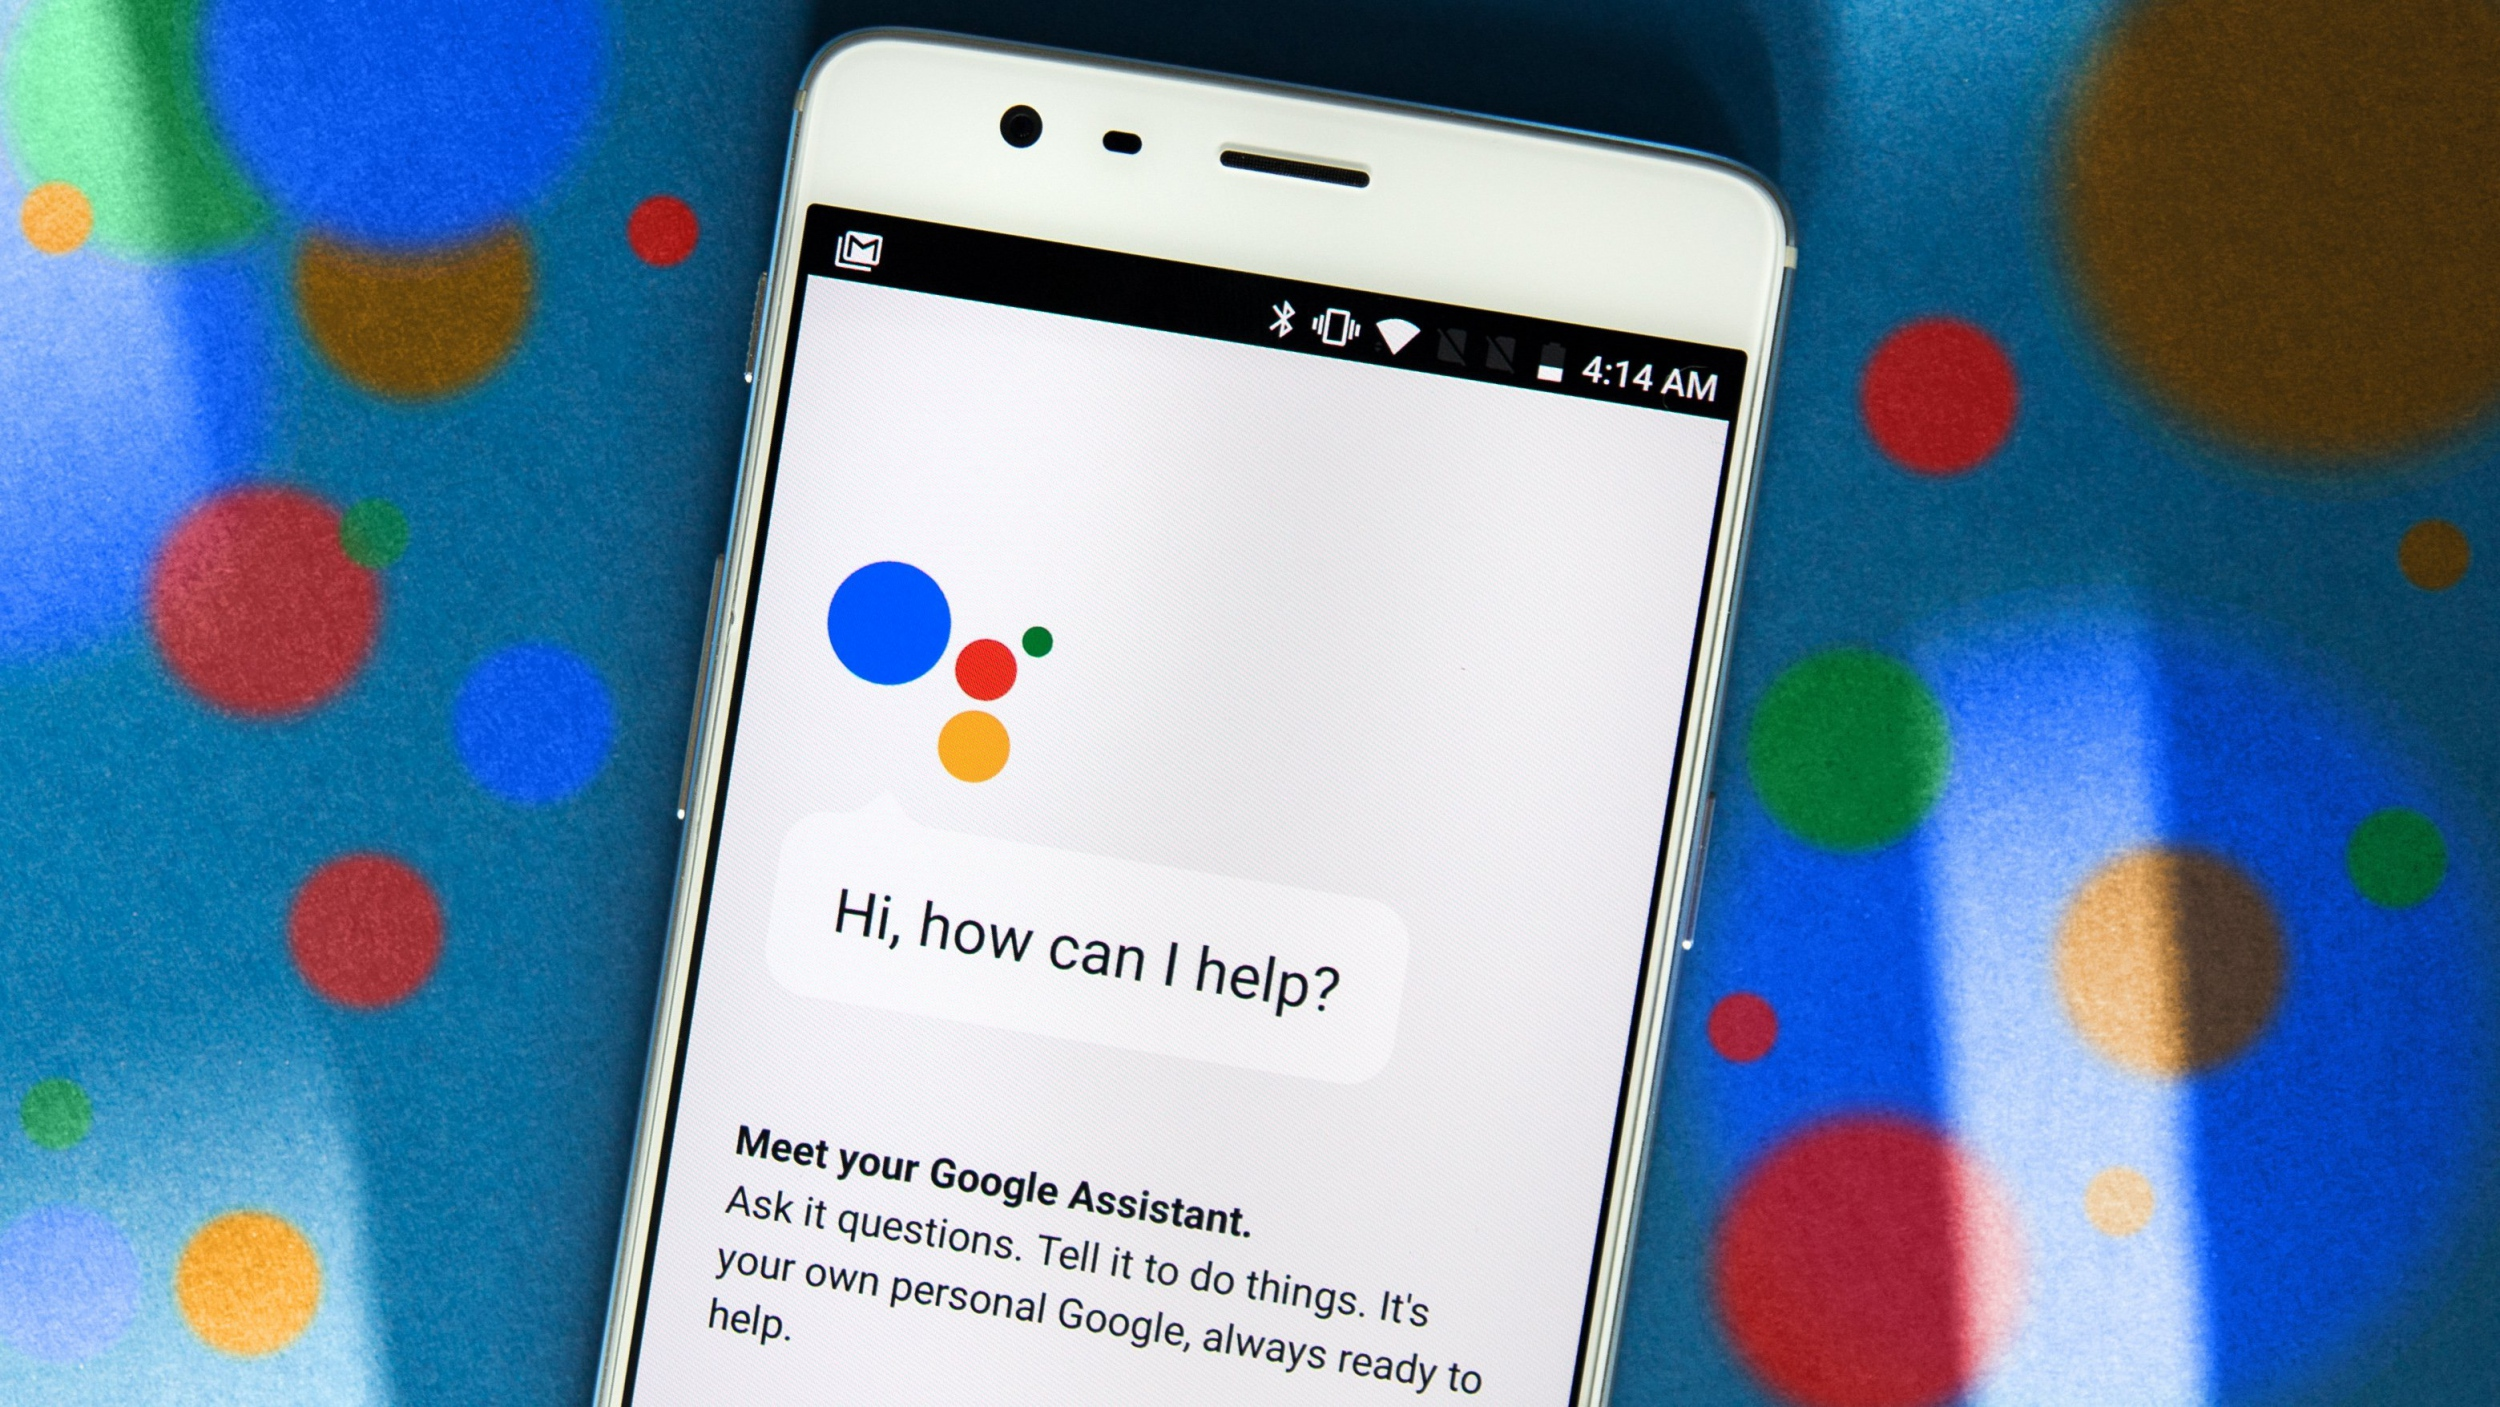 You are currently viewing O Google Assistant αποκτά νέες δεξιότητες με έμφαση στα παιδιά